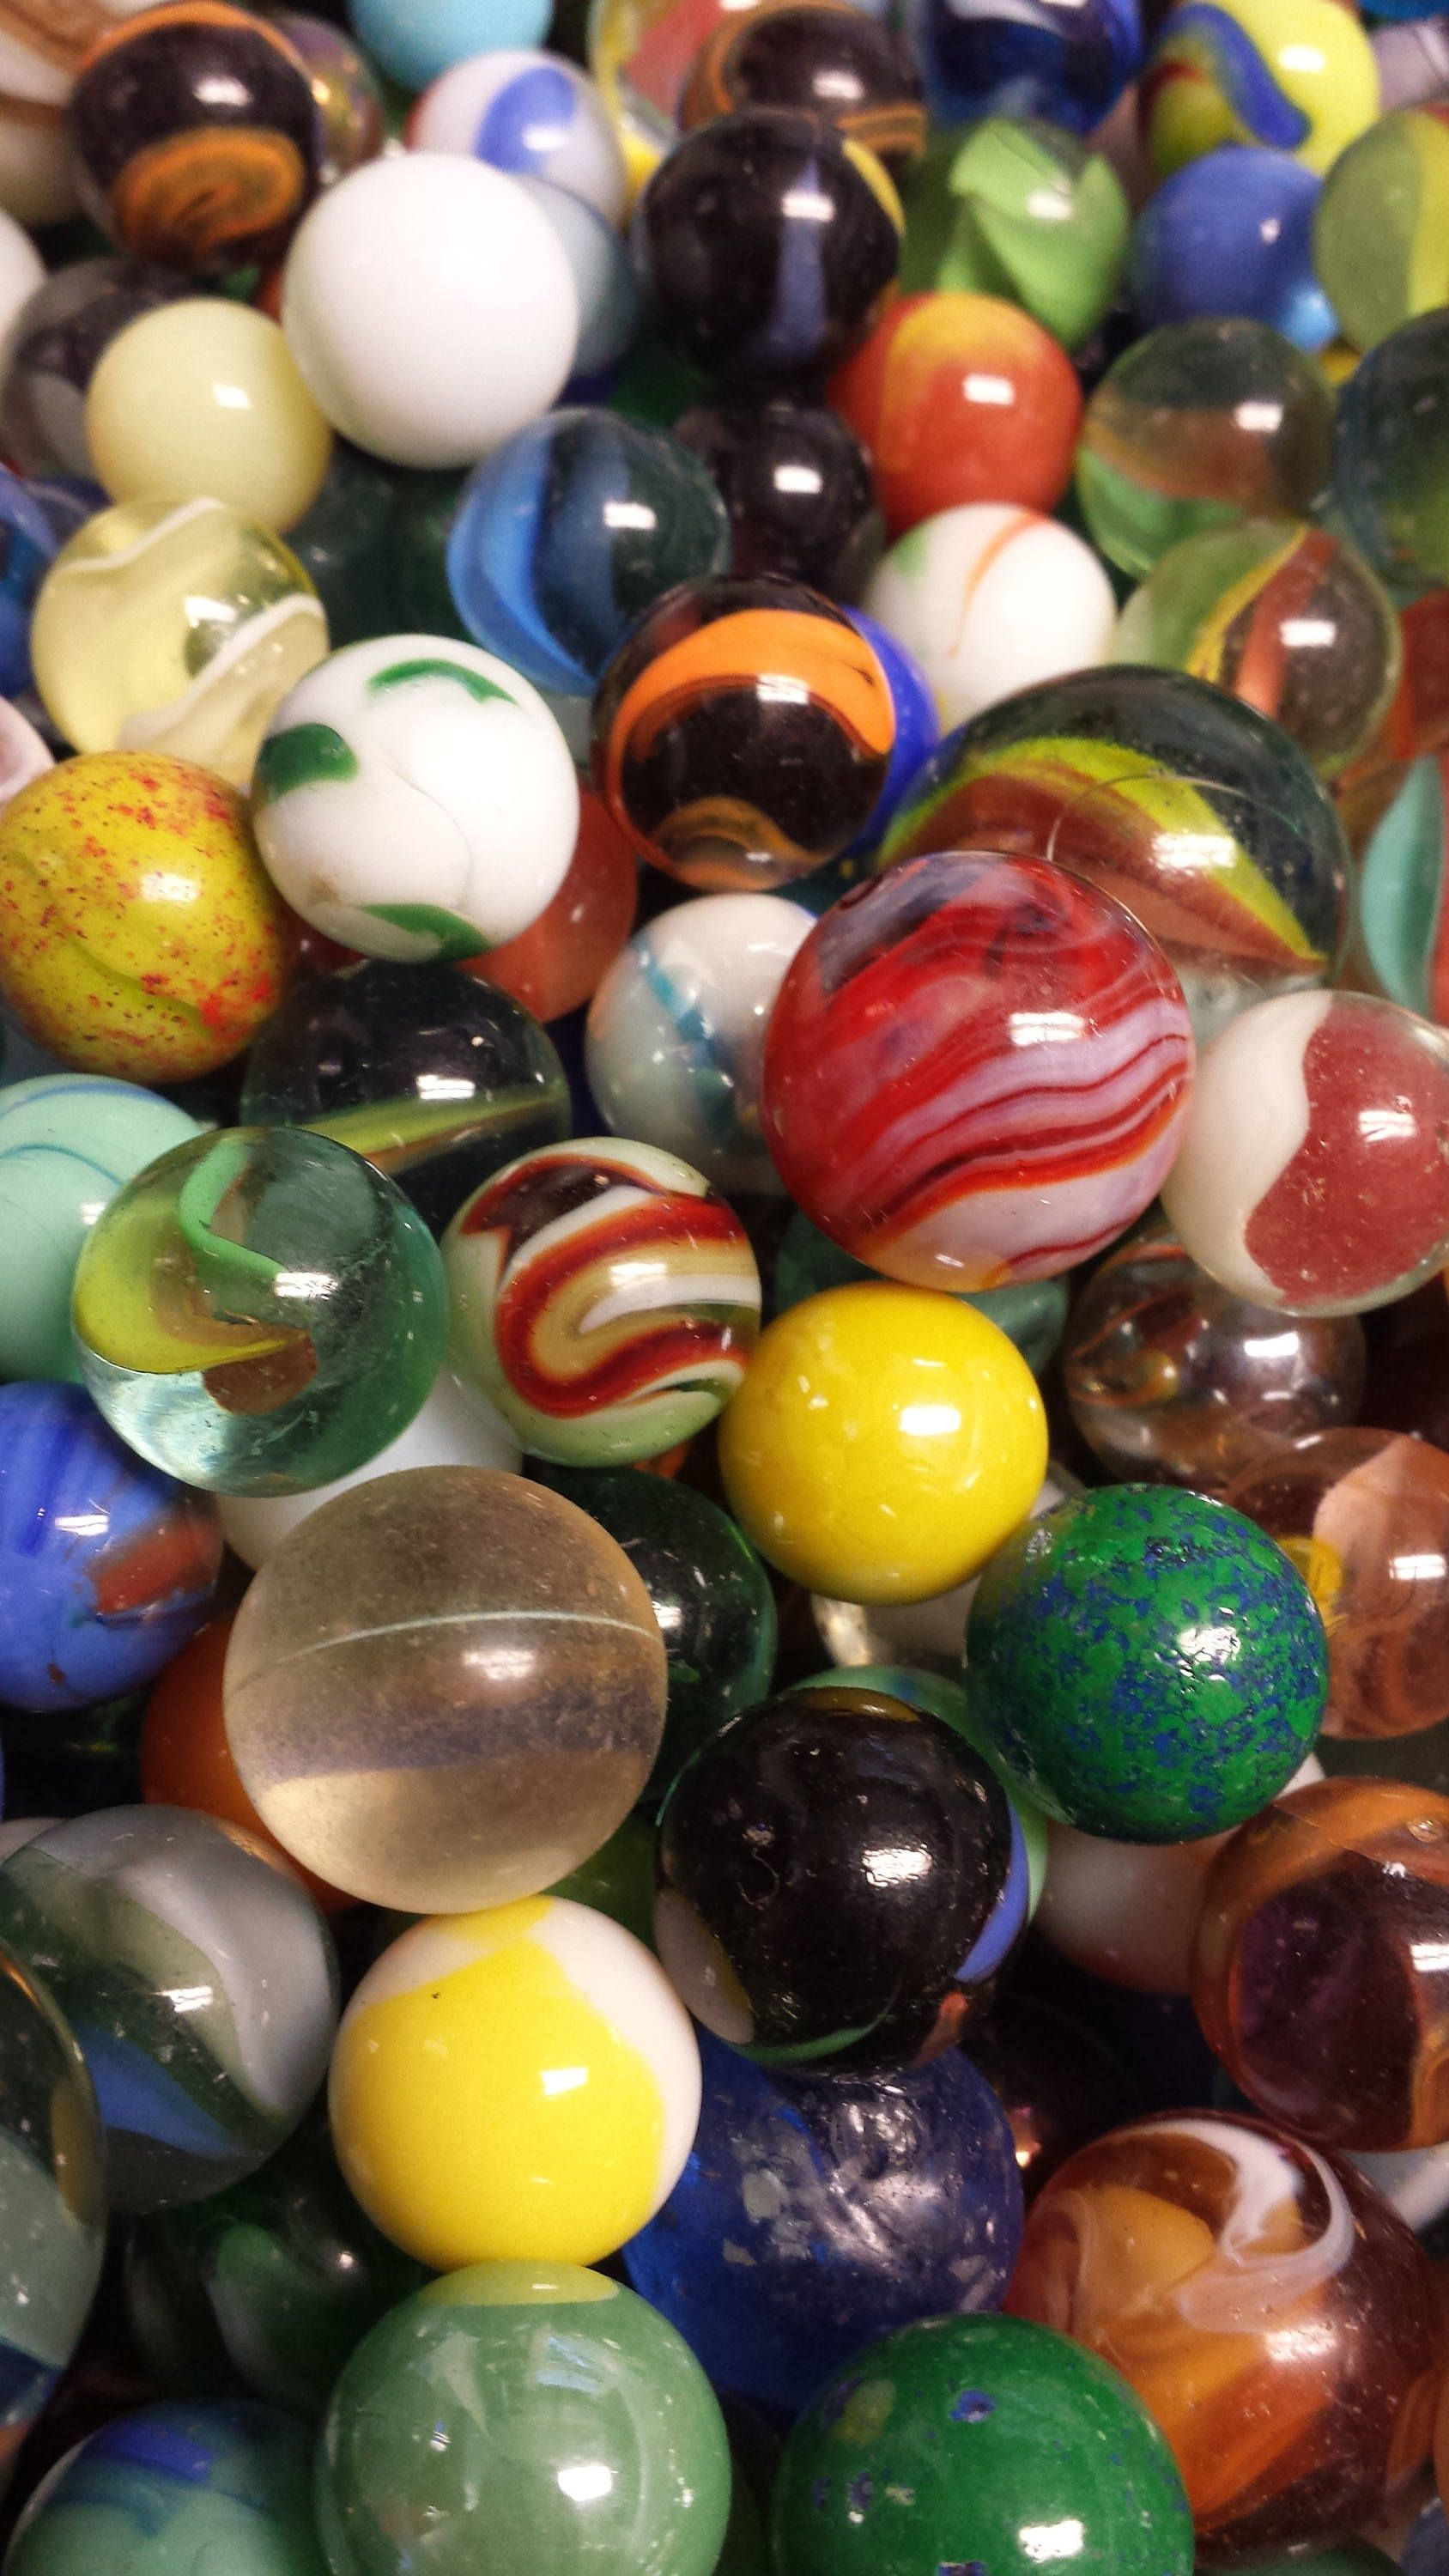 Vintage Marbles Lot Of 25 Of Various Designs Style And Sizes 画像あり ビー玉 美しい ユニーク